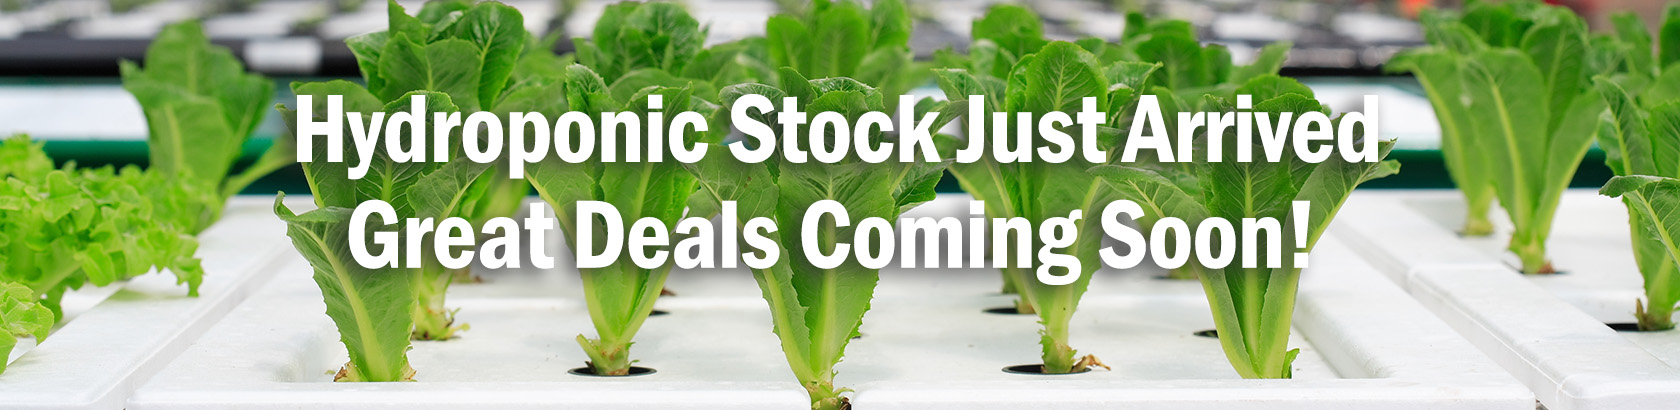 Hydroponics Stock Coming Soon